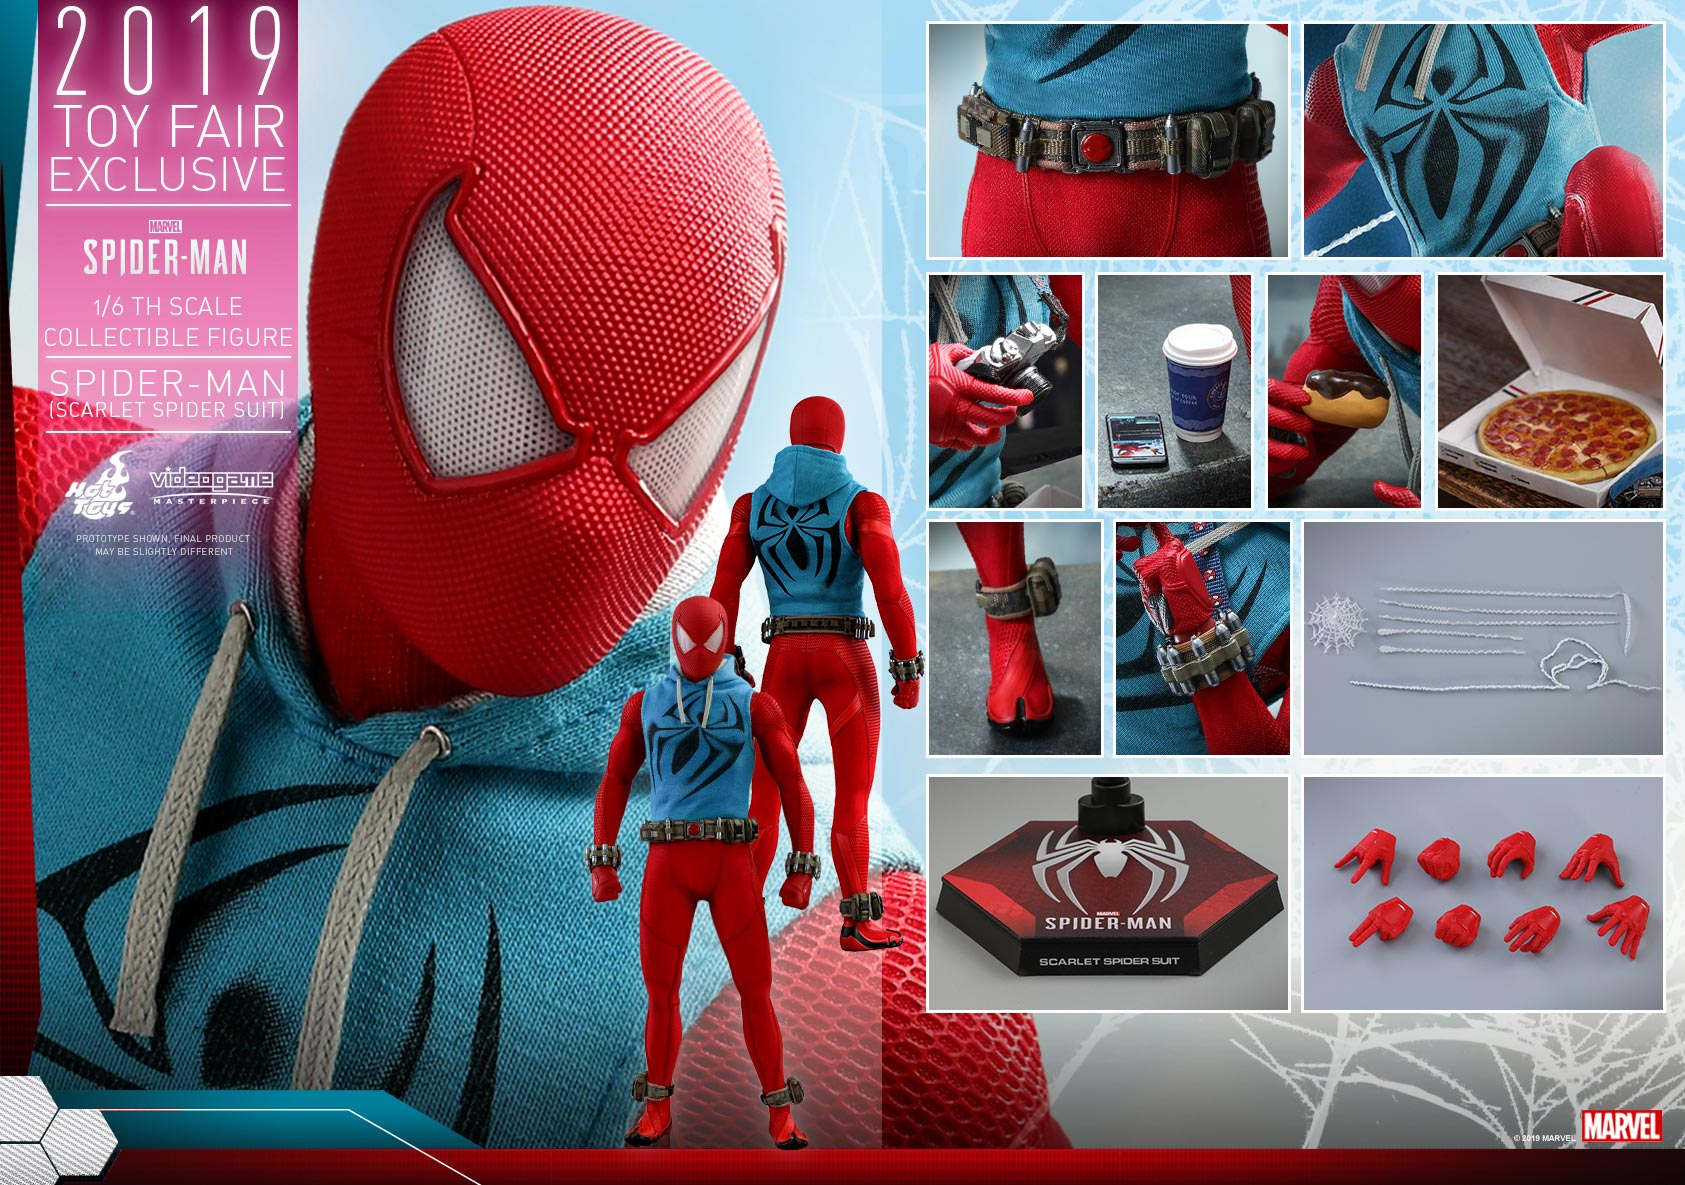 Hot-Toys---Marvel-Spider-Man---Spider-Man-(Scarlet-Spider-Suit)-collectible-figure_PR21